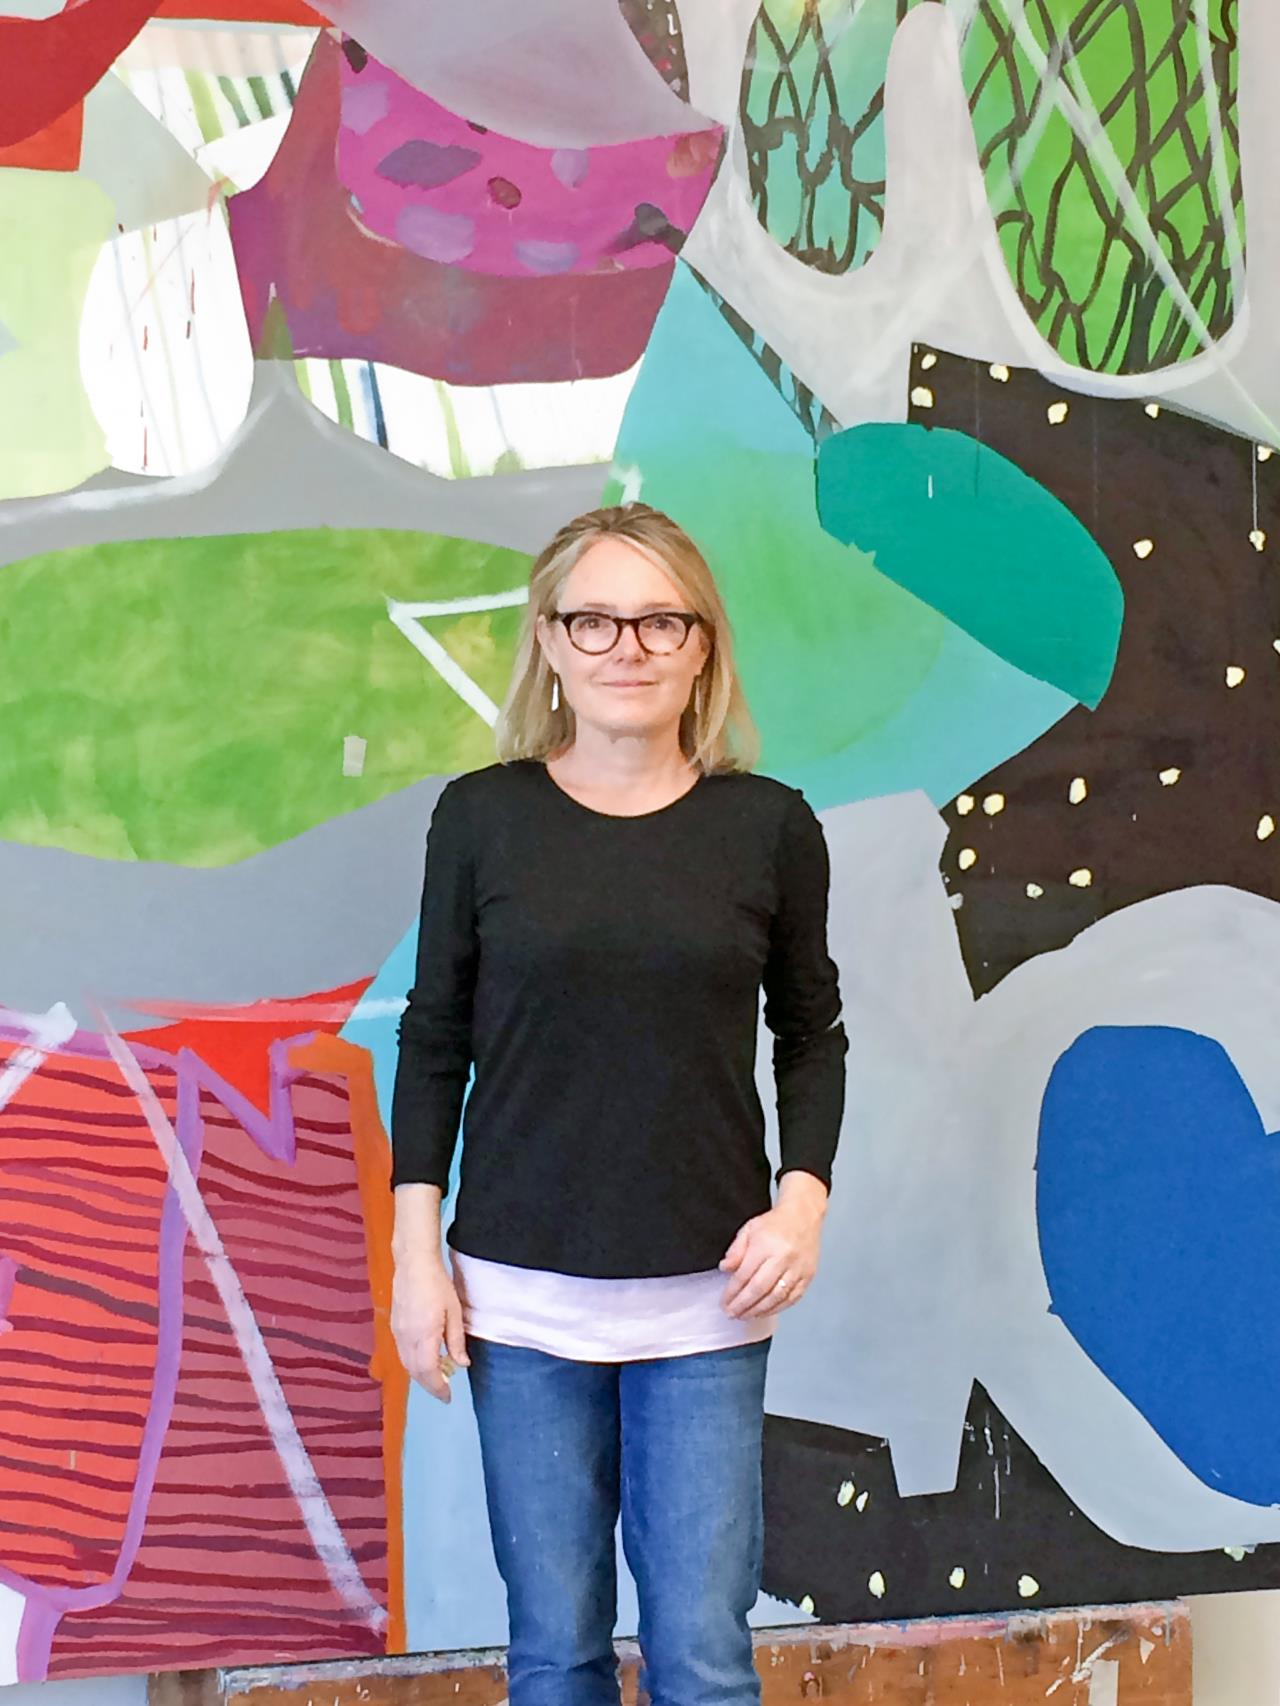 369ace255 Bay Area artist Linda Geary references urbanscapes and architecture near  her West Oakland studio in paintings that use vivid colors and bold shapes  to ...